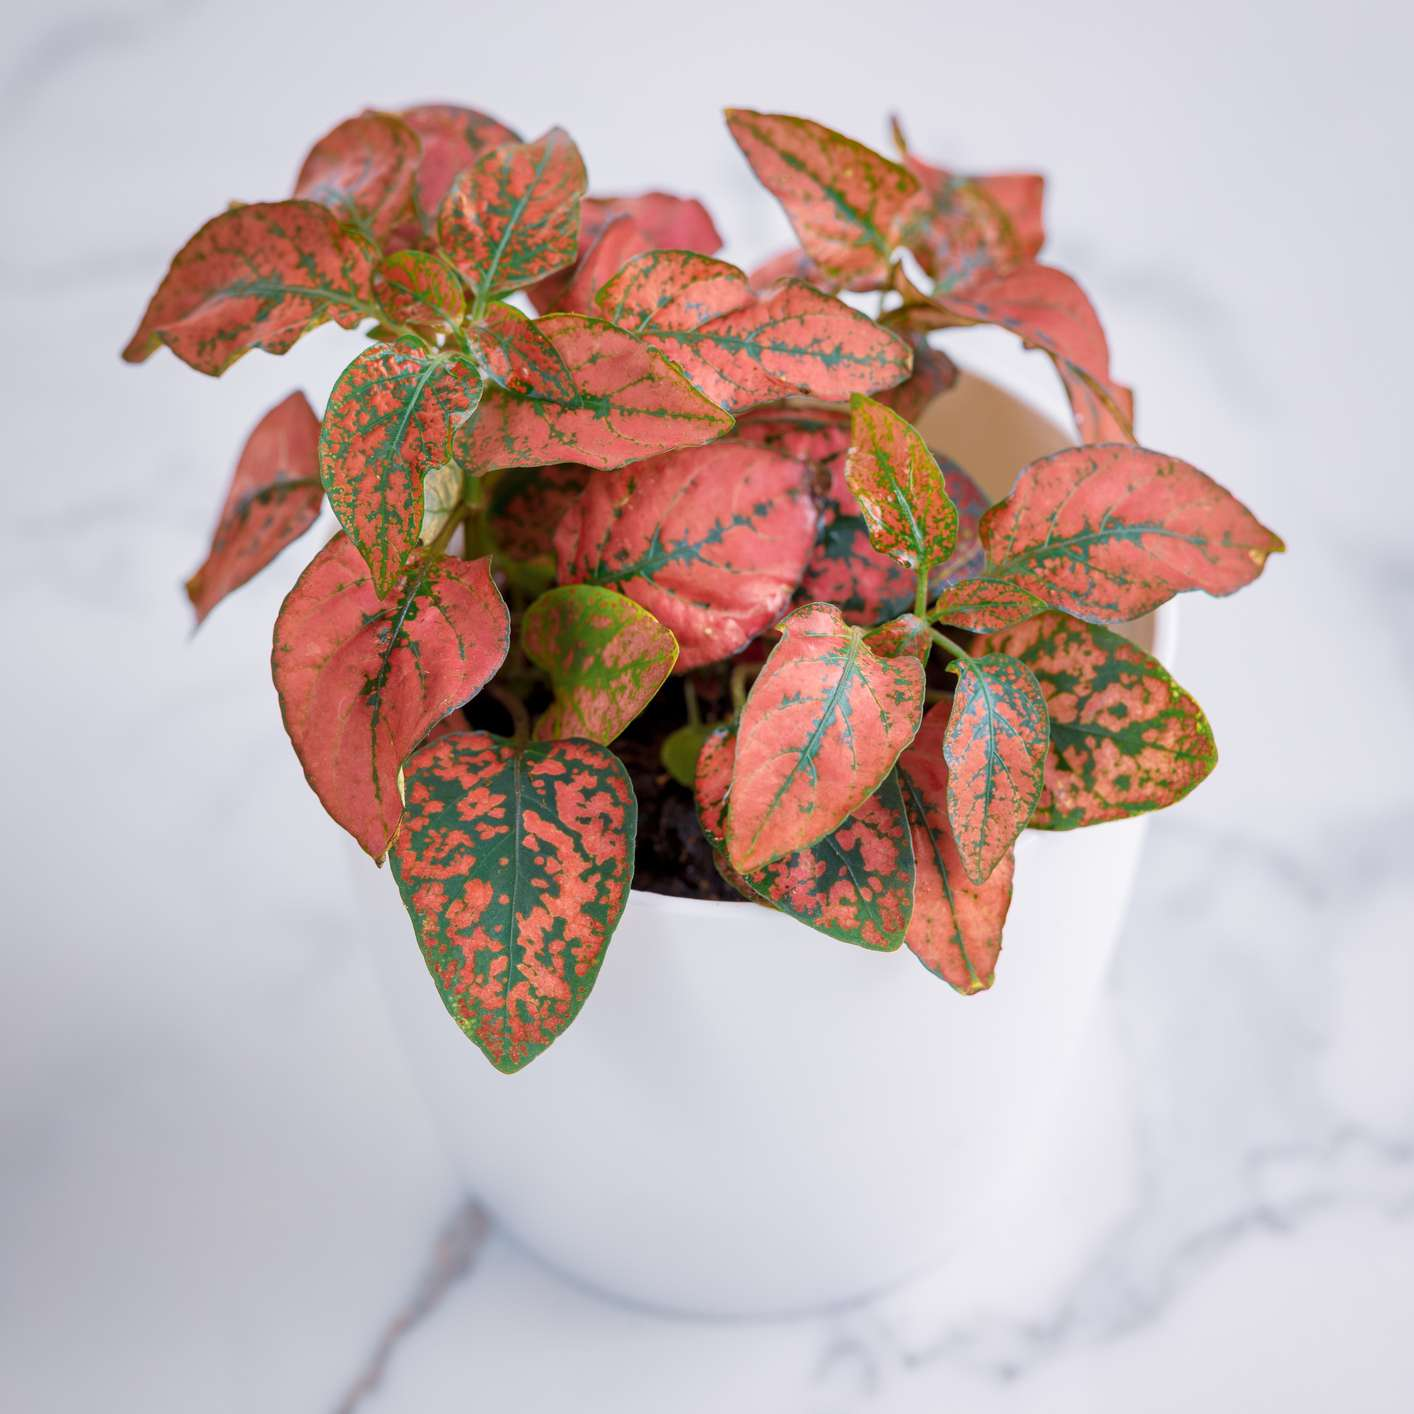 pink and green polka dot plant in white pot on marble background